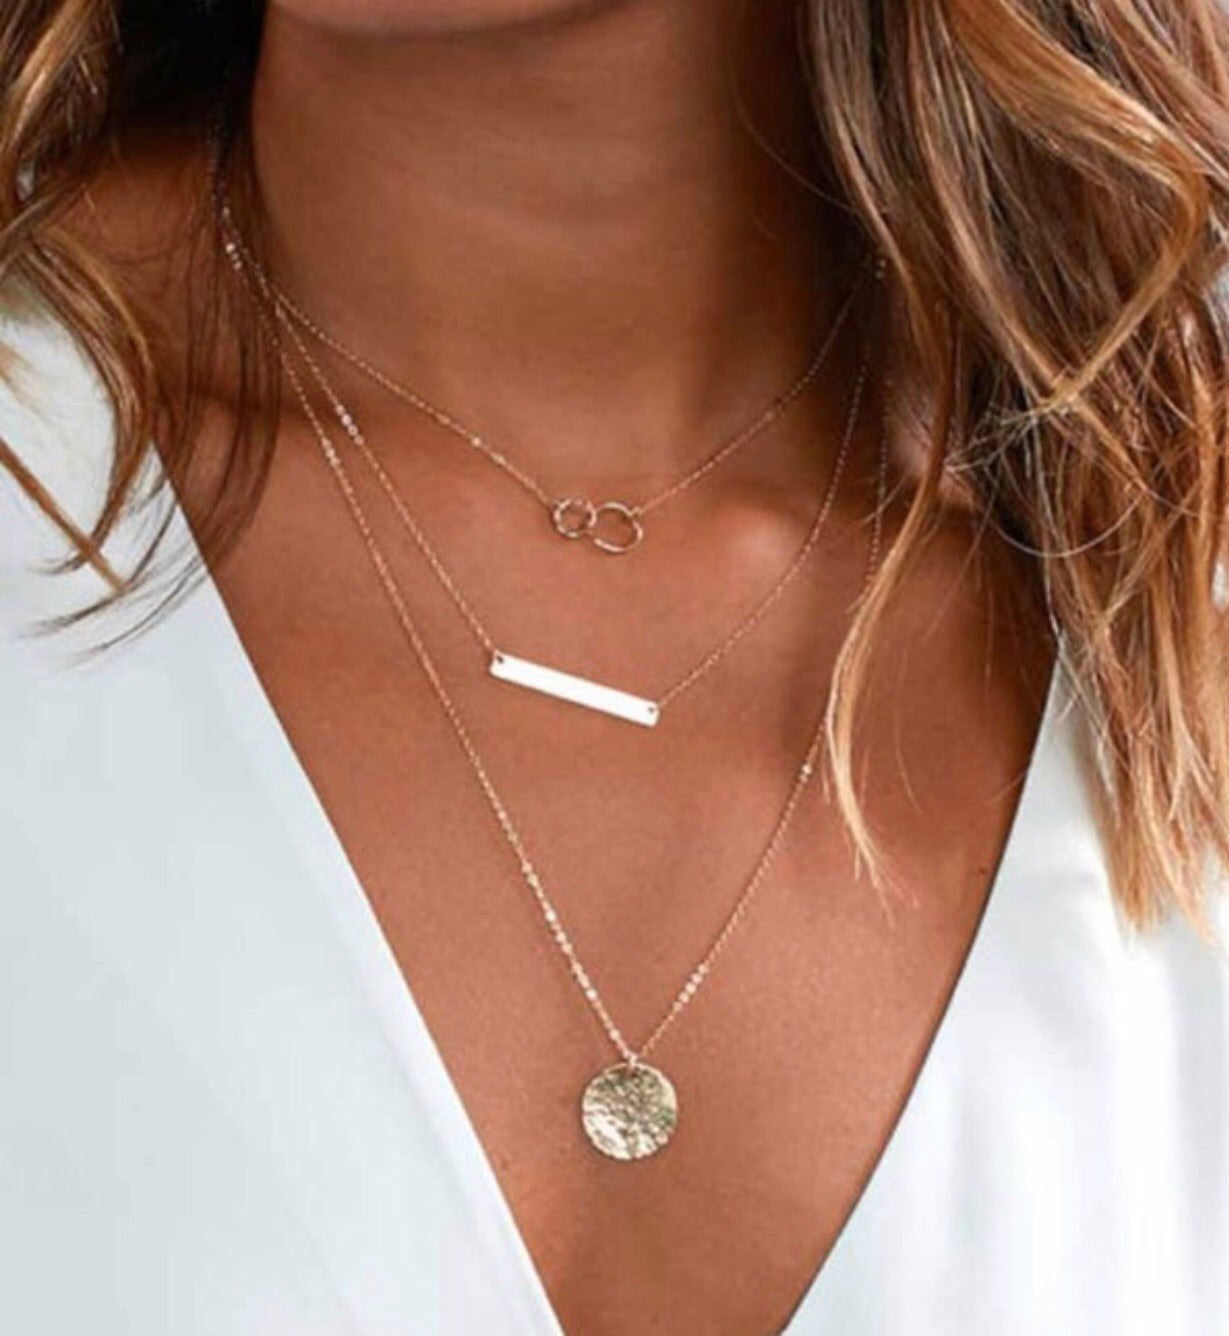 ALL ABOUT THE BOHO NECKLACE